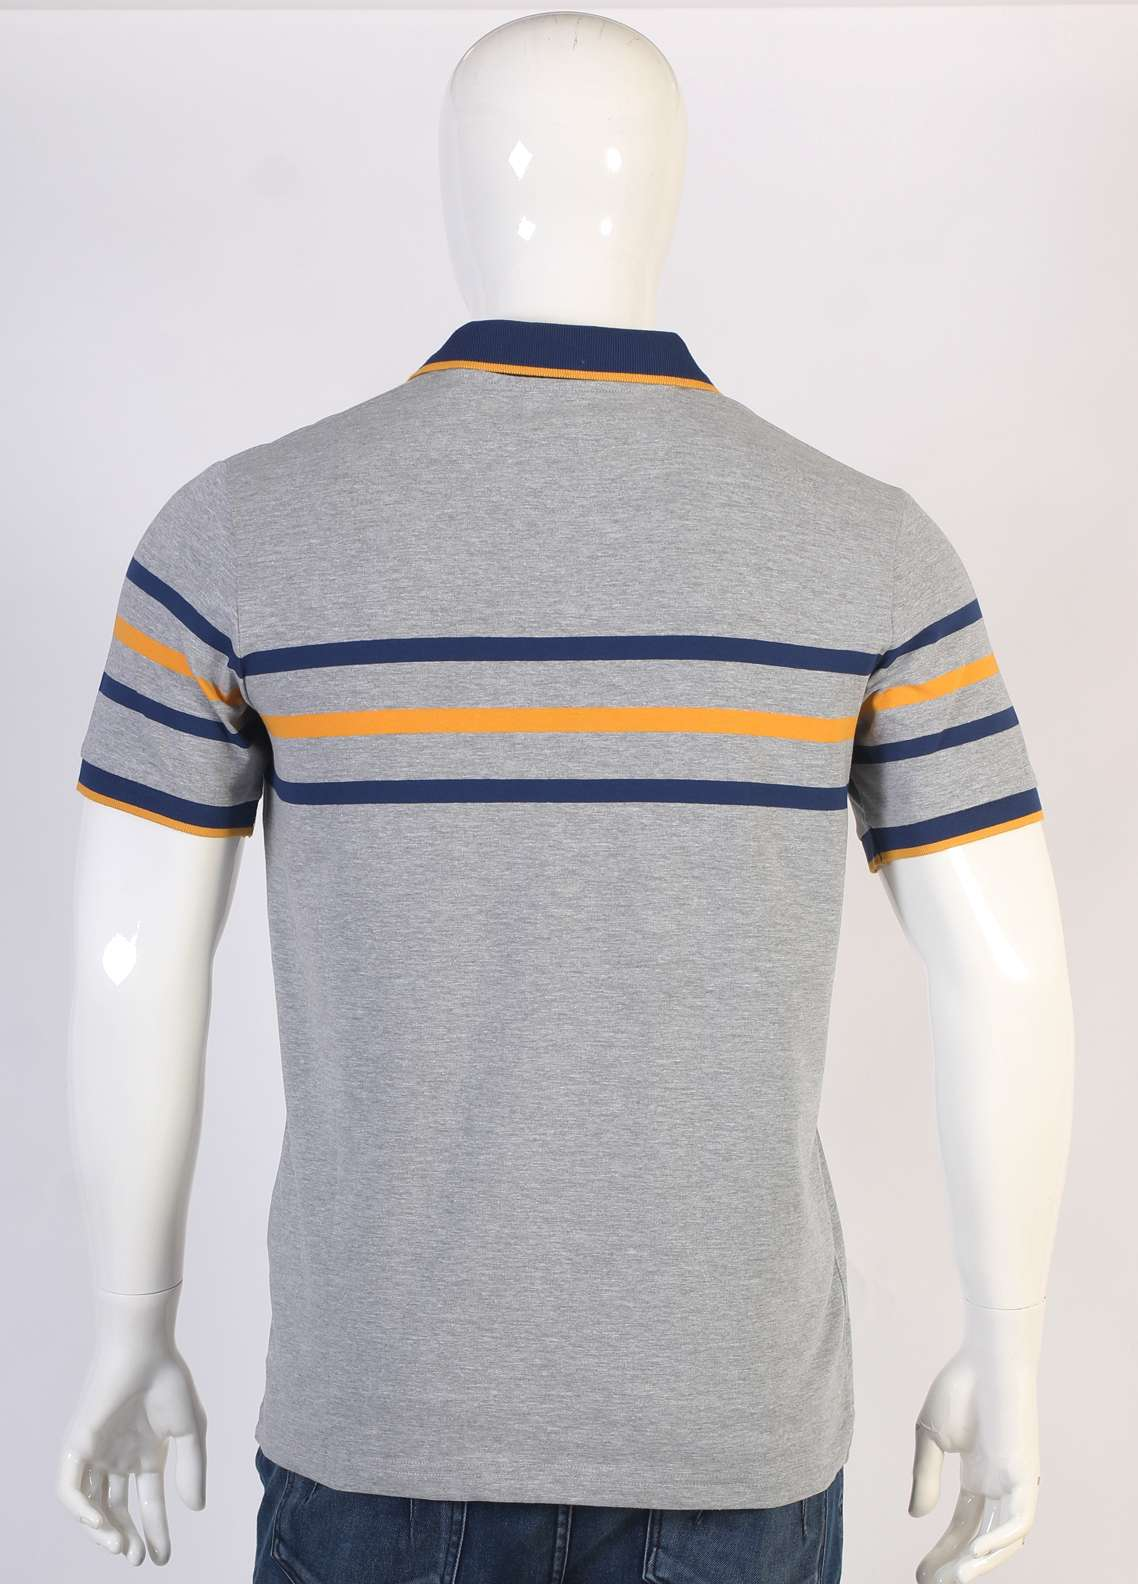 Sanaulla Exclusive Range Jersey Polo T-Shirts for Men - Grey TKM18S 1304-04